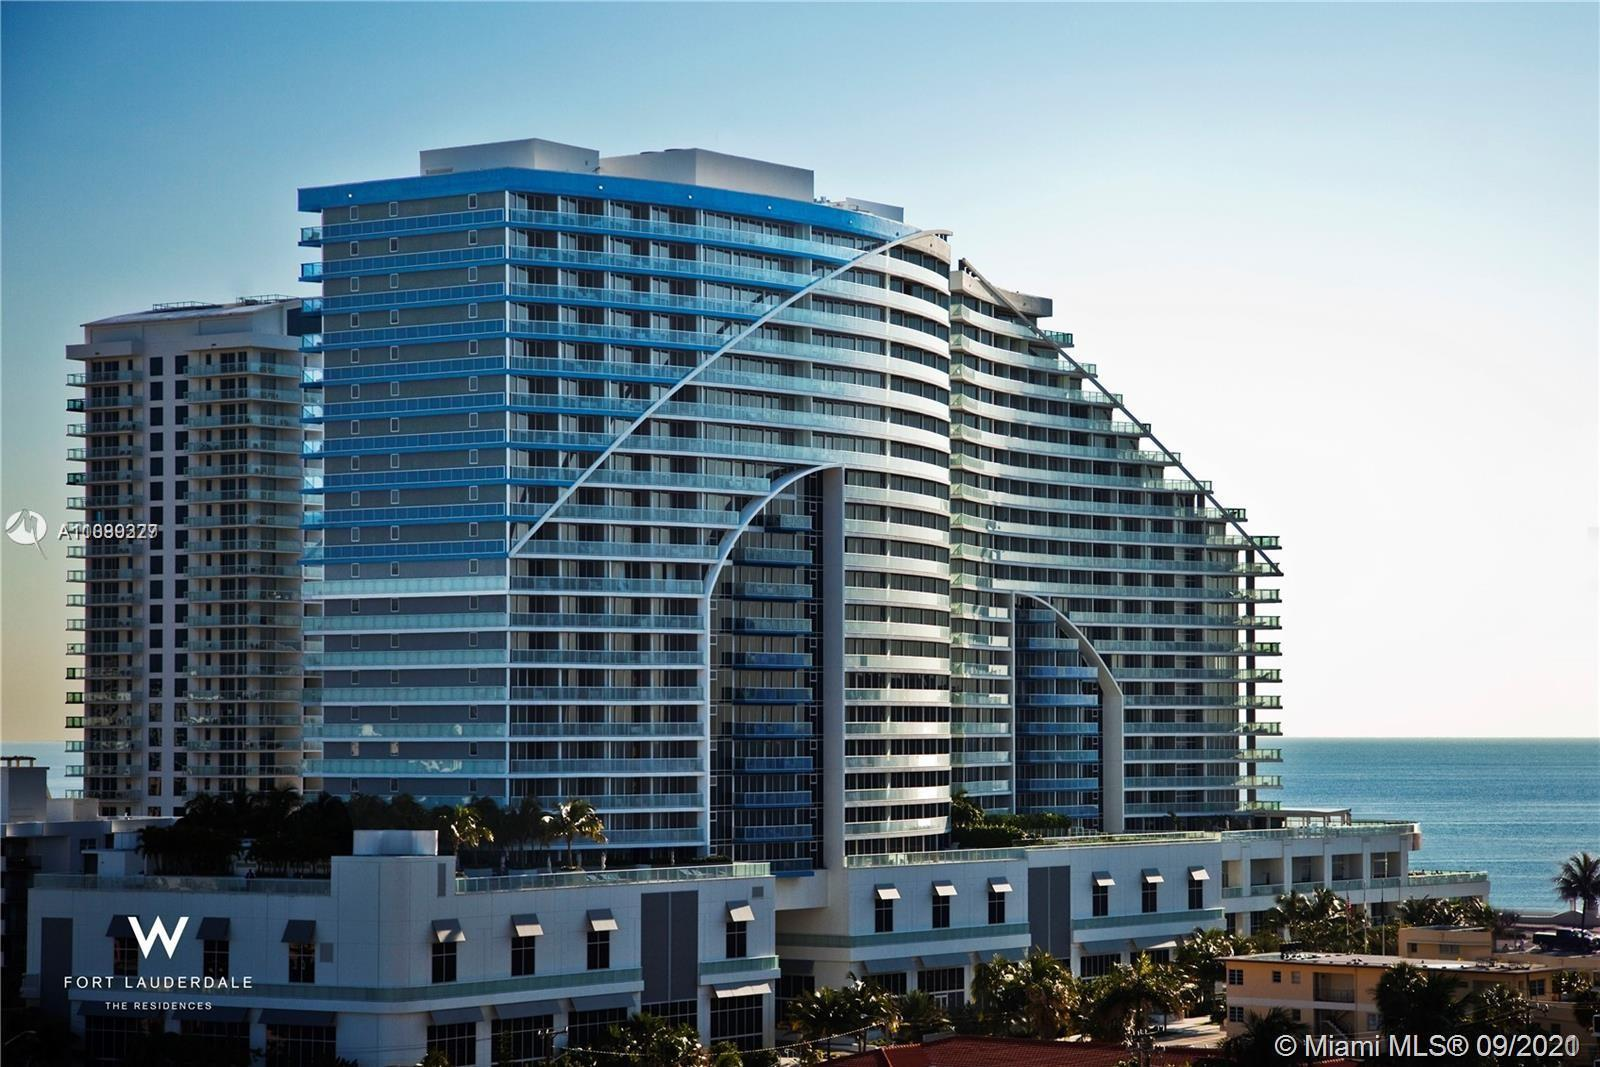 Acquire a permanent sense of escape at The Residences at W Fort Lauderdale. Located in one of the wo